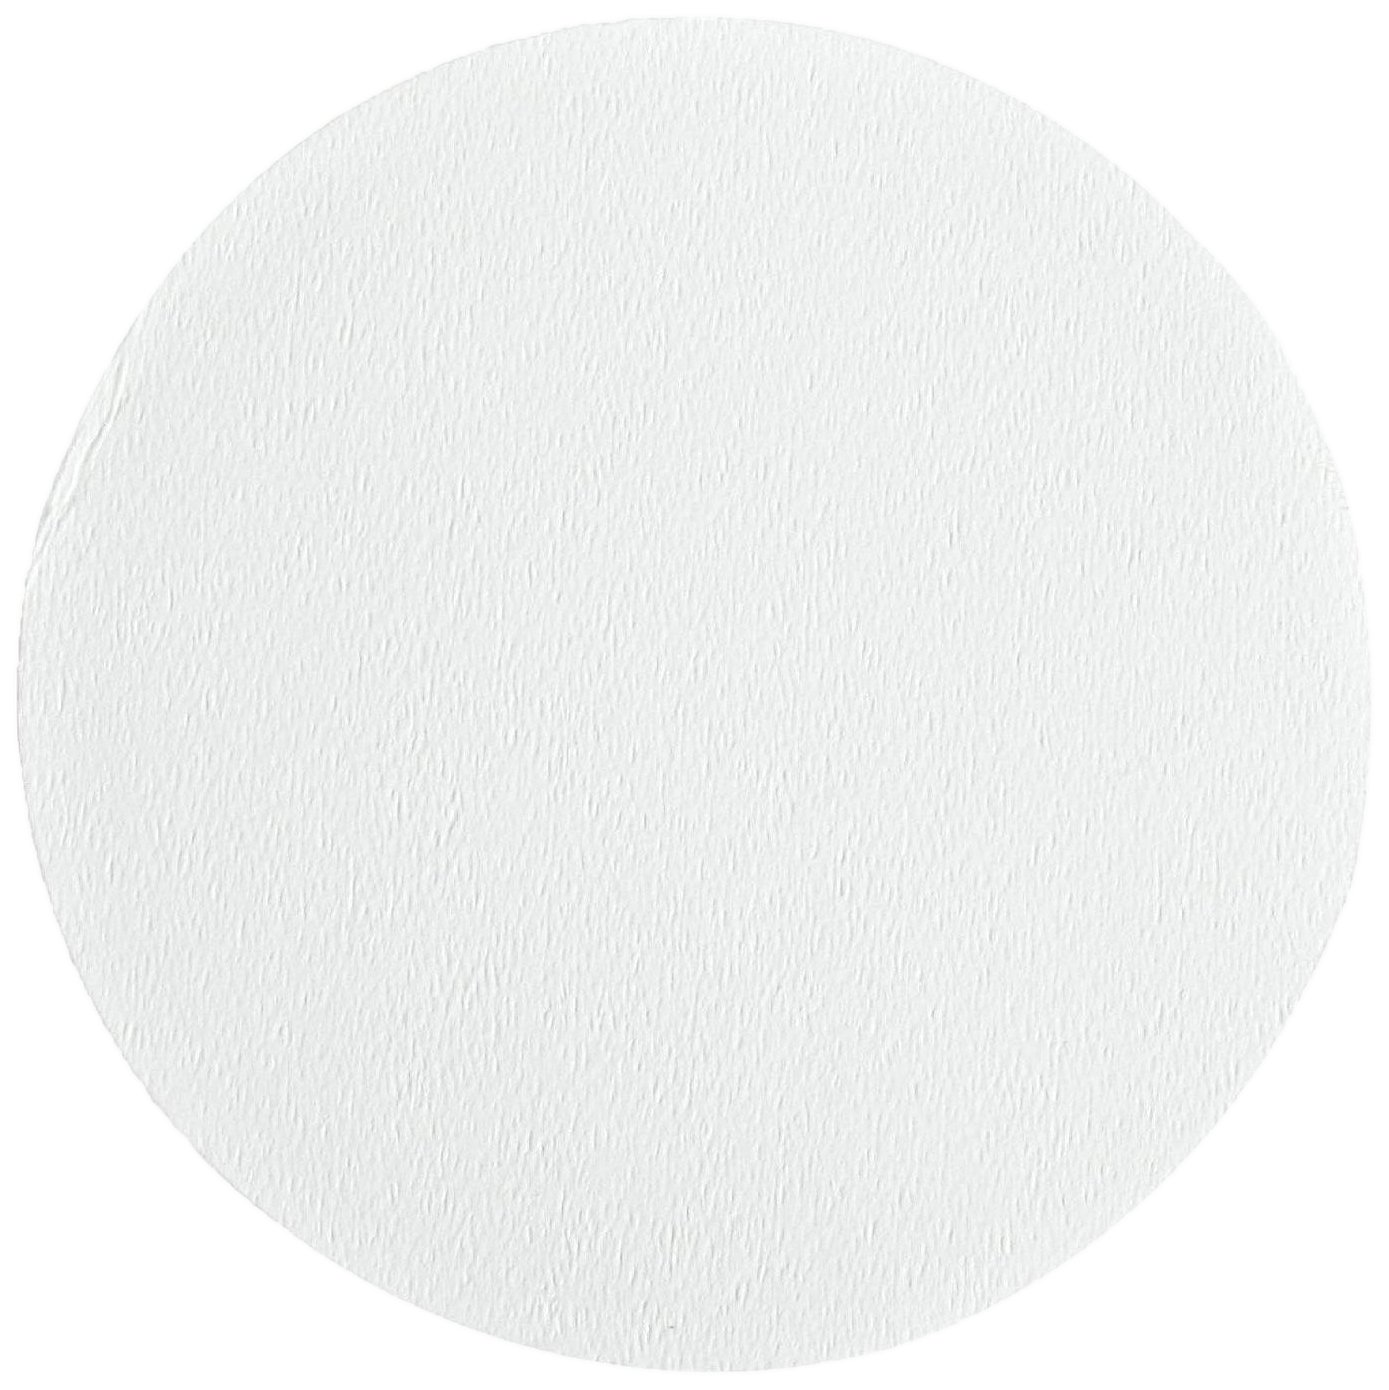 Ahlstrom 1510-0425 Borosilicate Glass Microfiber Filter Paper, 0.7 Micron, Slow Flow, Grade 151, 4.25cm Diameter (Box of 100) by Ahlstrom